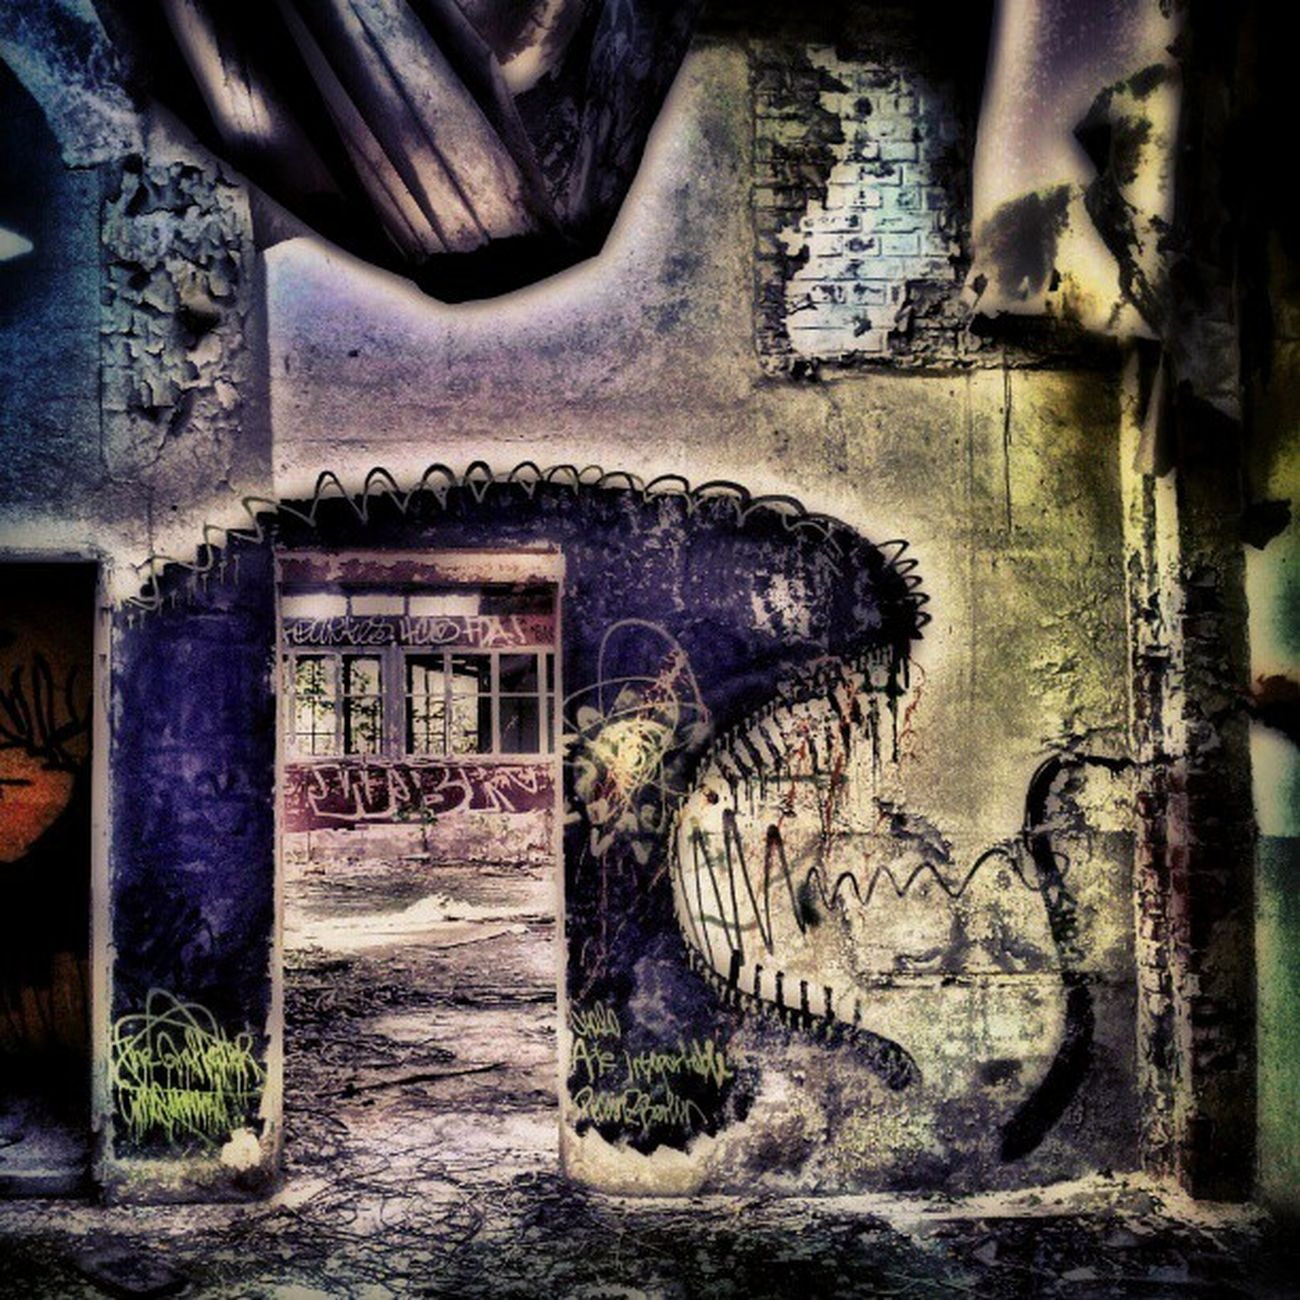 Hungry beast. Grime Abandonedbuilding Urbanexploration 50shadesofgrime Findingbeautyoutofshit Sutroalwayswins Lostplaces Filthyfamily Urbanex Rottenfeed Igdungeon Abandoned Sfx_urbex Derelict Lostplace Decay Detailsofdecay Photowall Beautymess Rotten Lostinplace Urbex Beautifuldecay Partnersingrime Organisedgrime Filthyfeeds Grimenoir